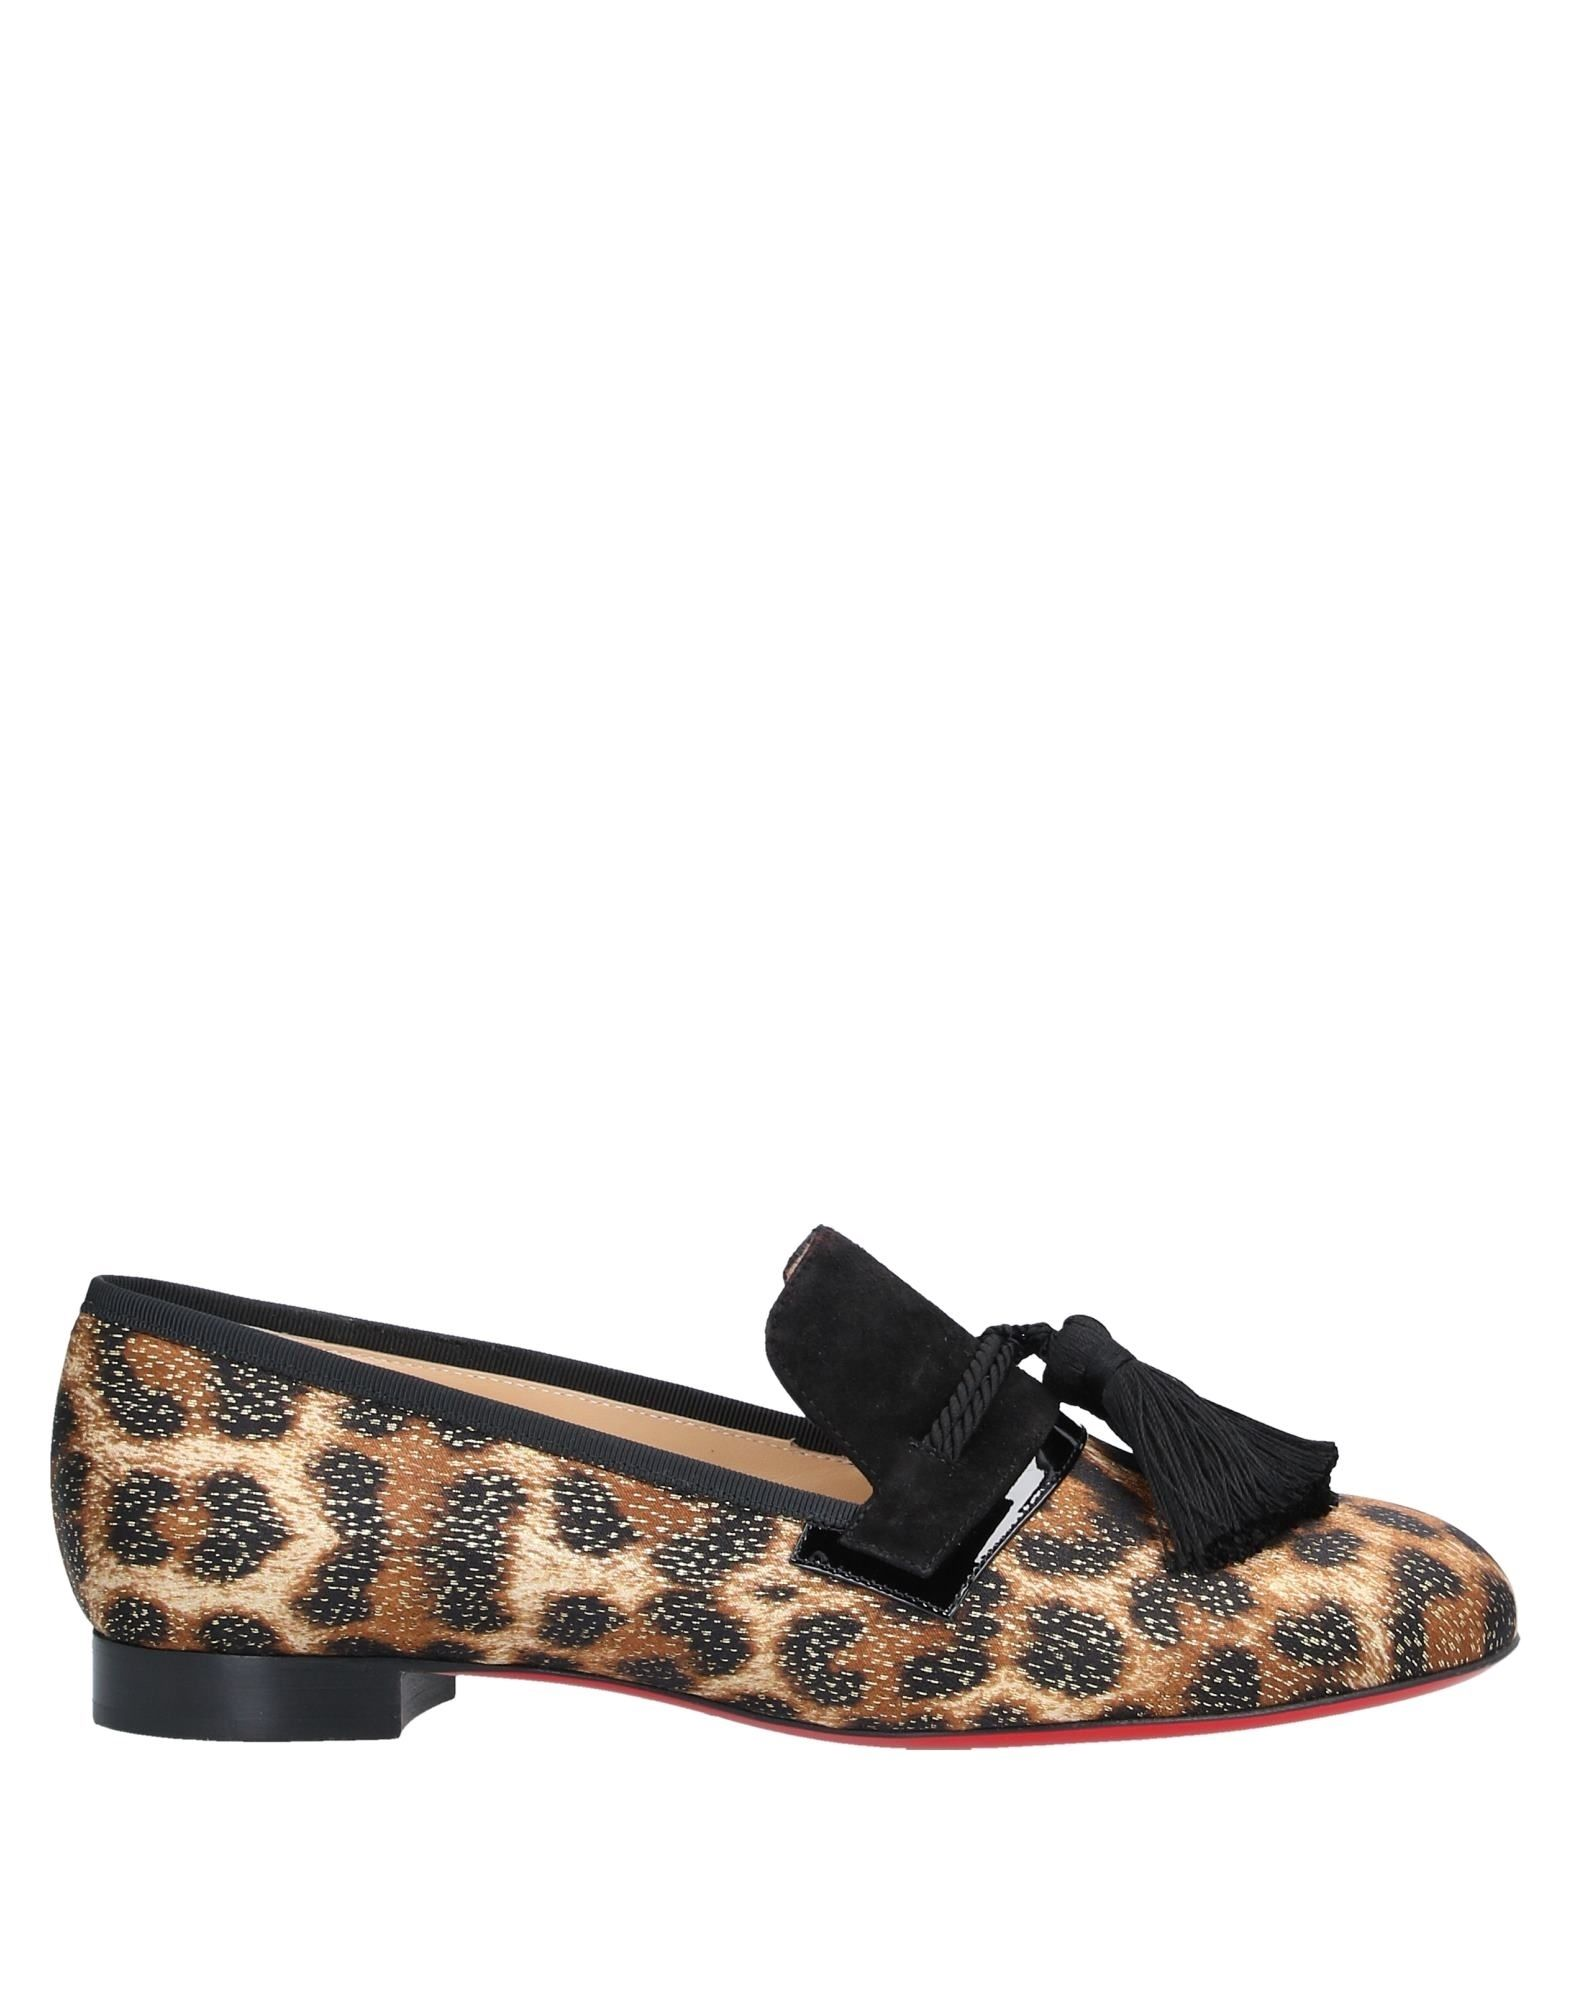 CHRISTIAN LOUBOUTIN Loafers. lamé, tassels, suede effect, animal print, round toeline, flat, leather lining, leather sole, contains non-textile parts of animal origin, satin, small sized. Soft Leather, Textile fibers